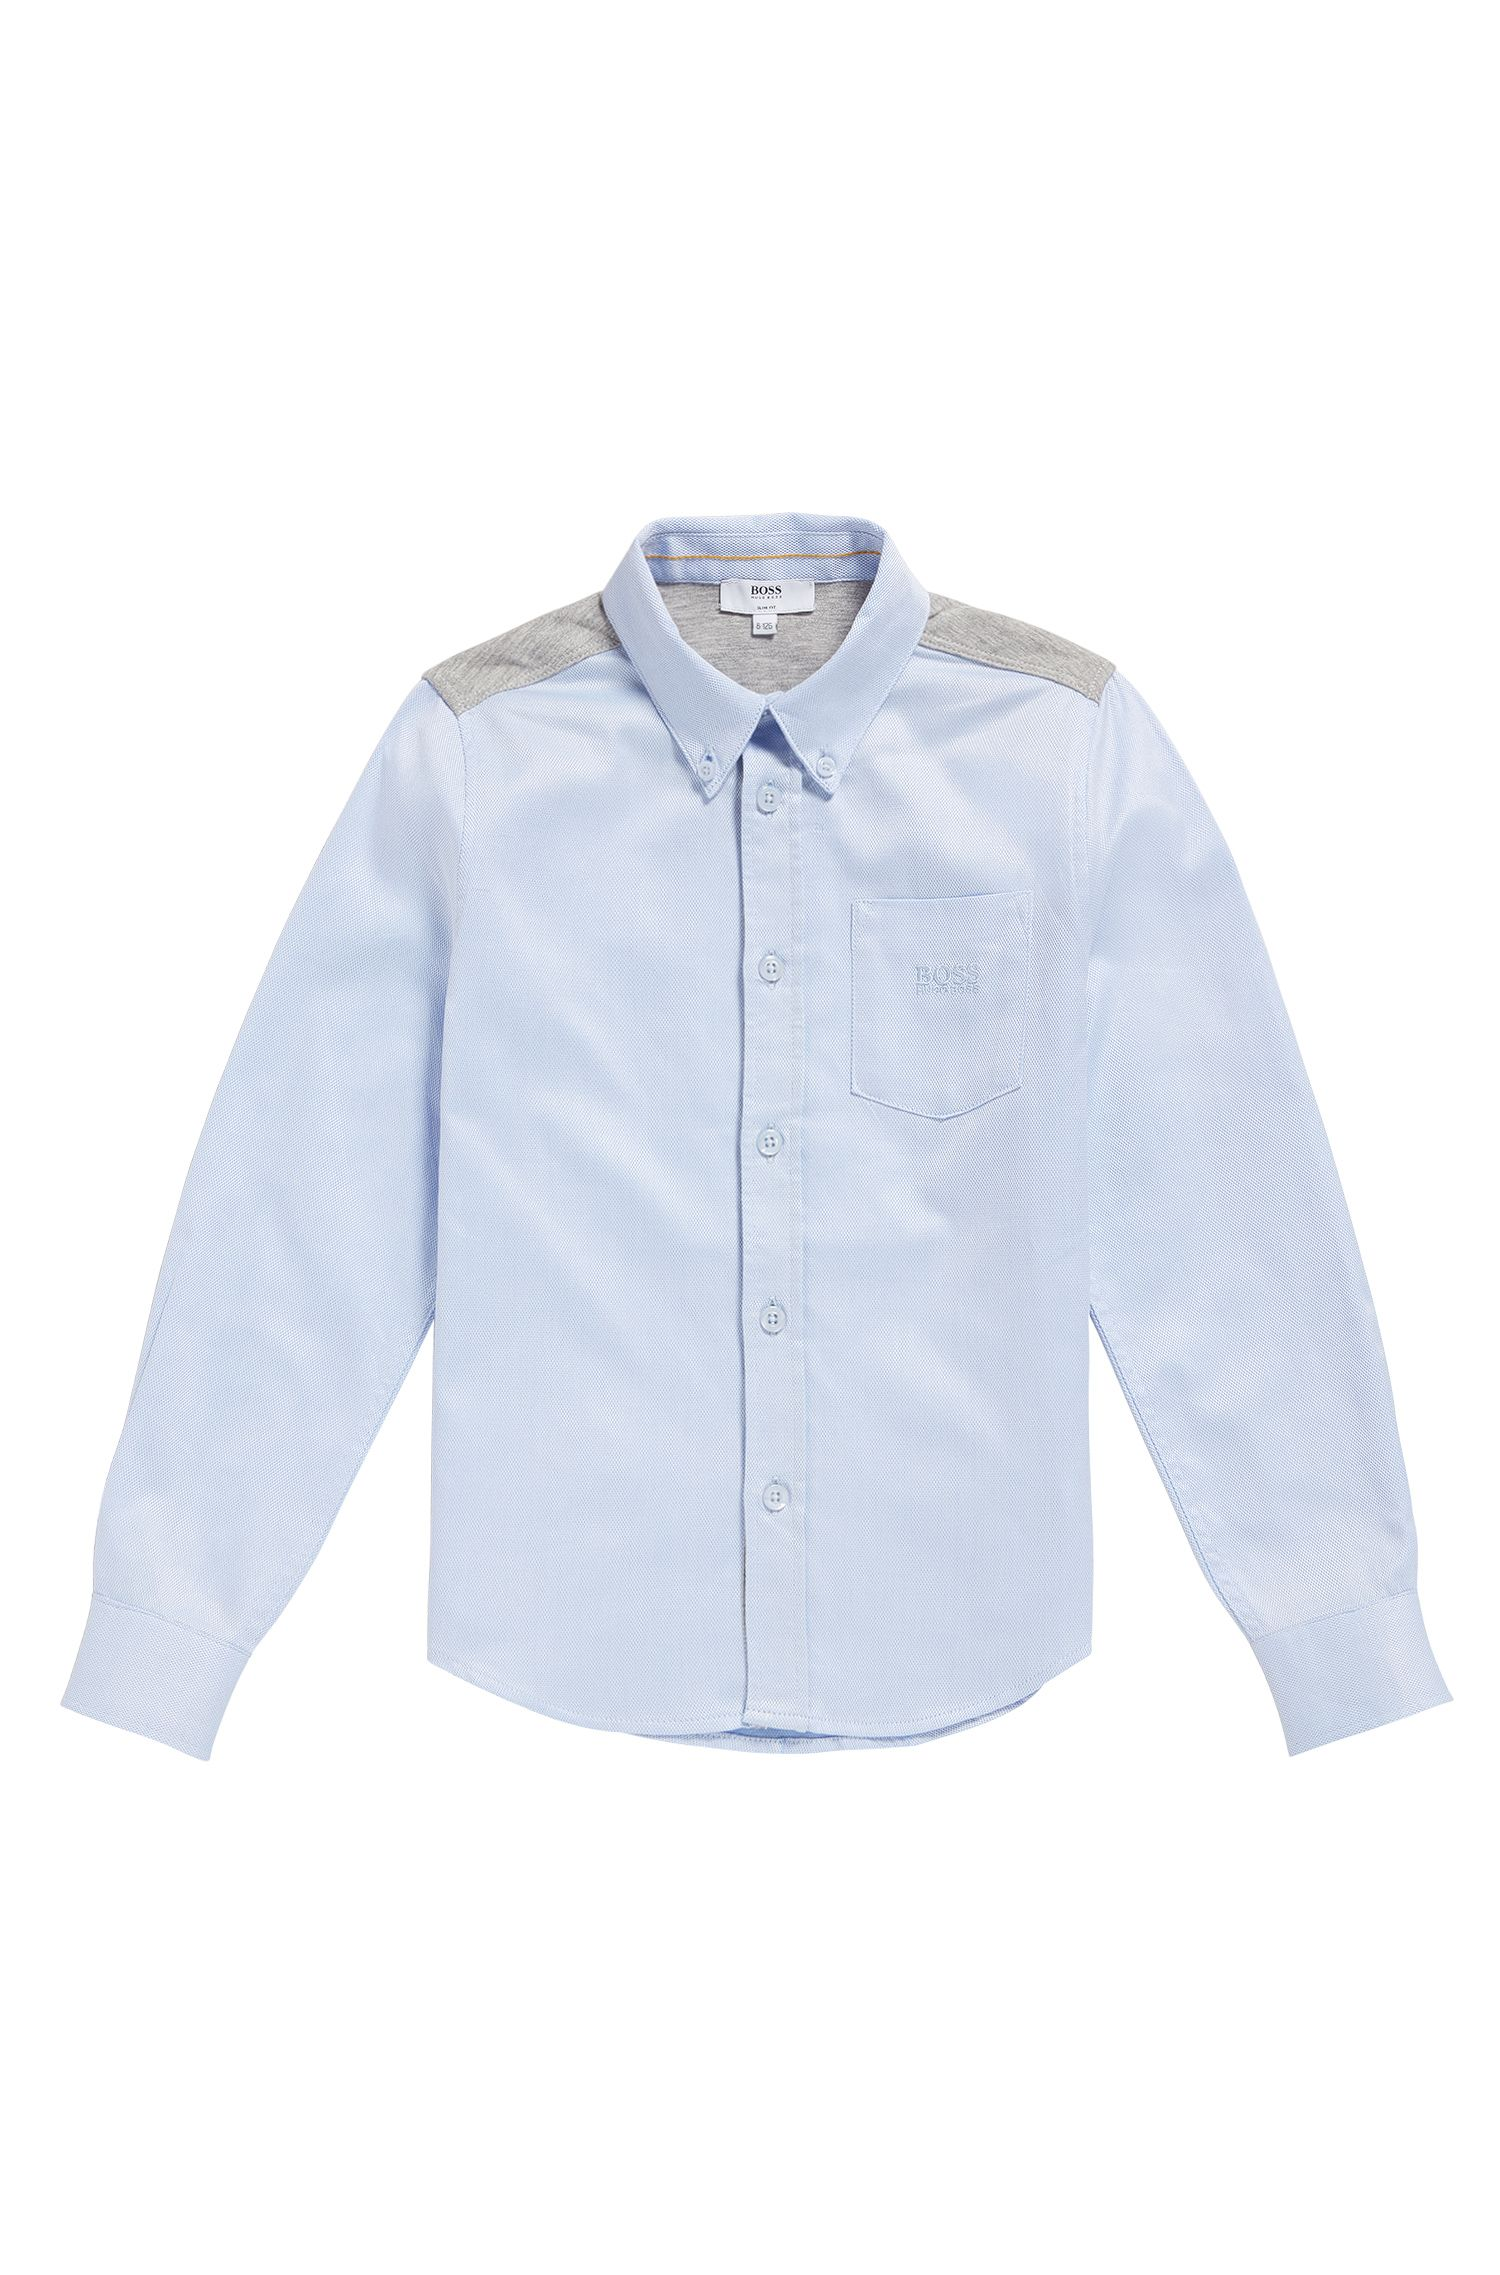 Kids' shirt in cotton with jersey trim: 'J25990'